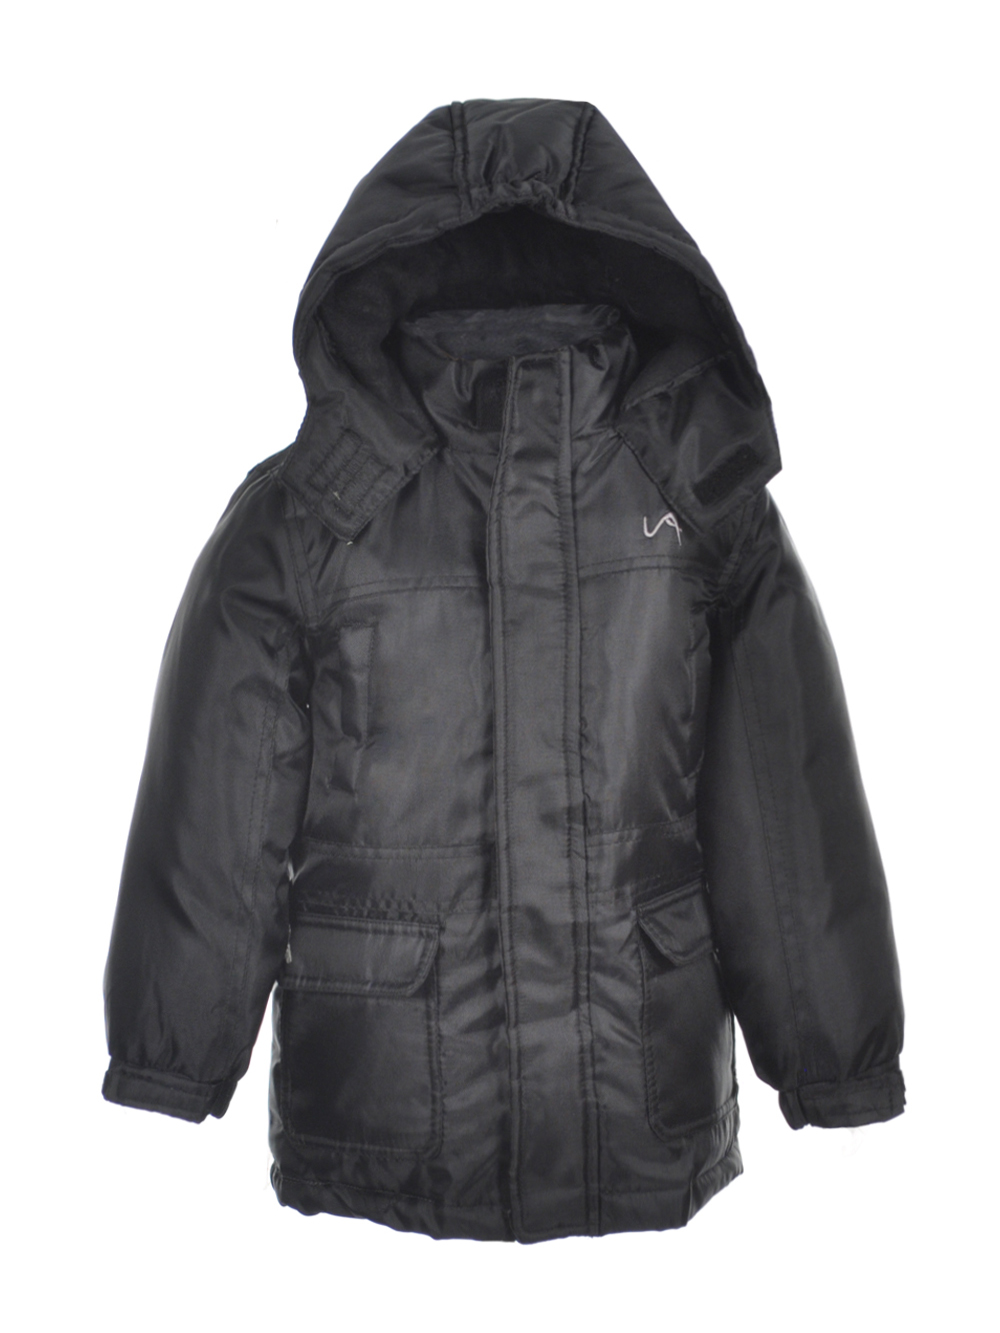 Image of Vertical 9 Little Boys Toddler Winter Stone Insulated Jacket Sizes 2T  4T  black 2t